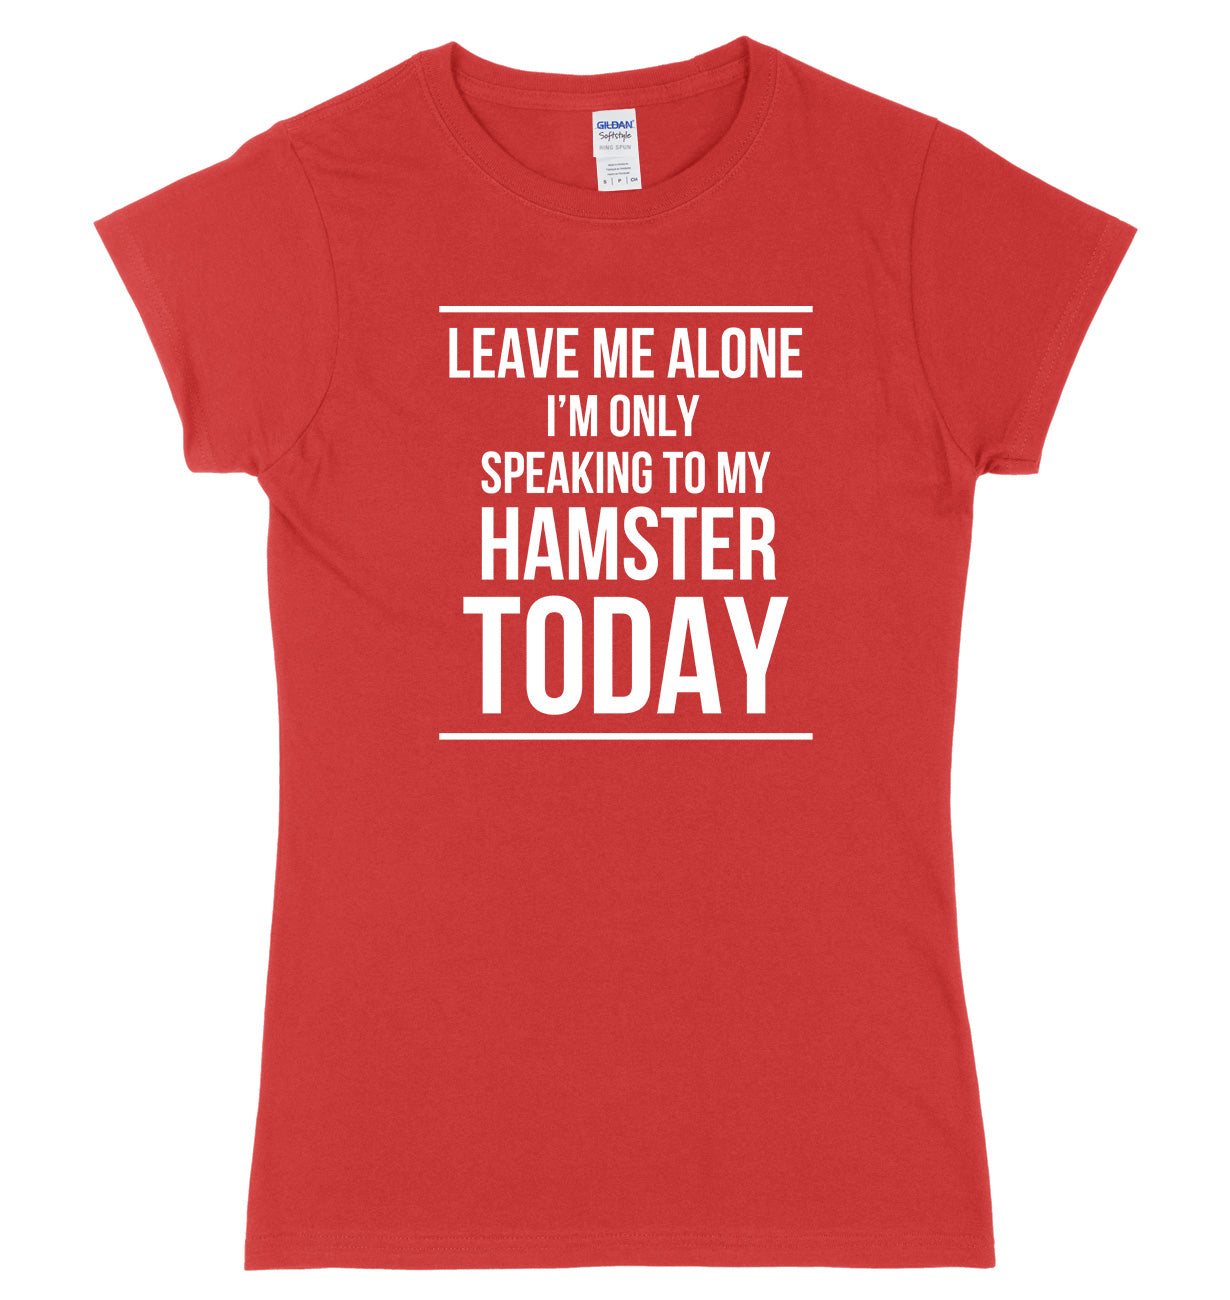 LEAVE ME ALONE I'M ONLY SPEAKING TO MY HAMSTER TODAY FUNNY WOMENS LADIES SLIM FIT  T-SHIRT